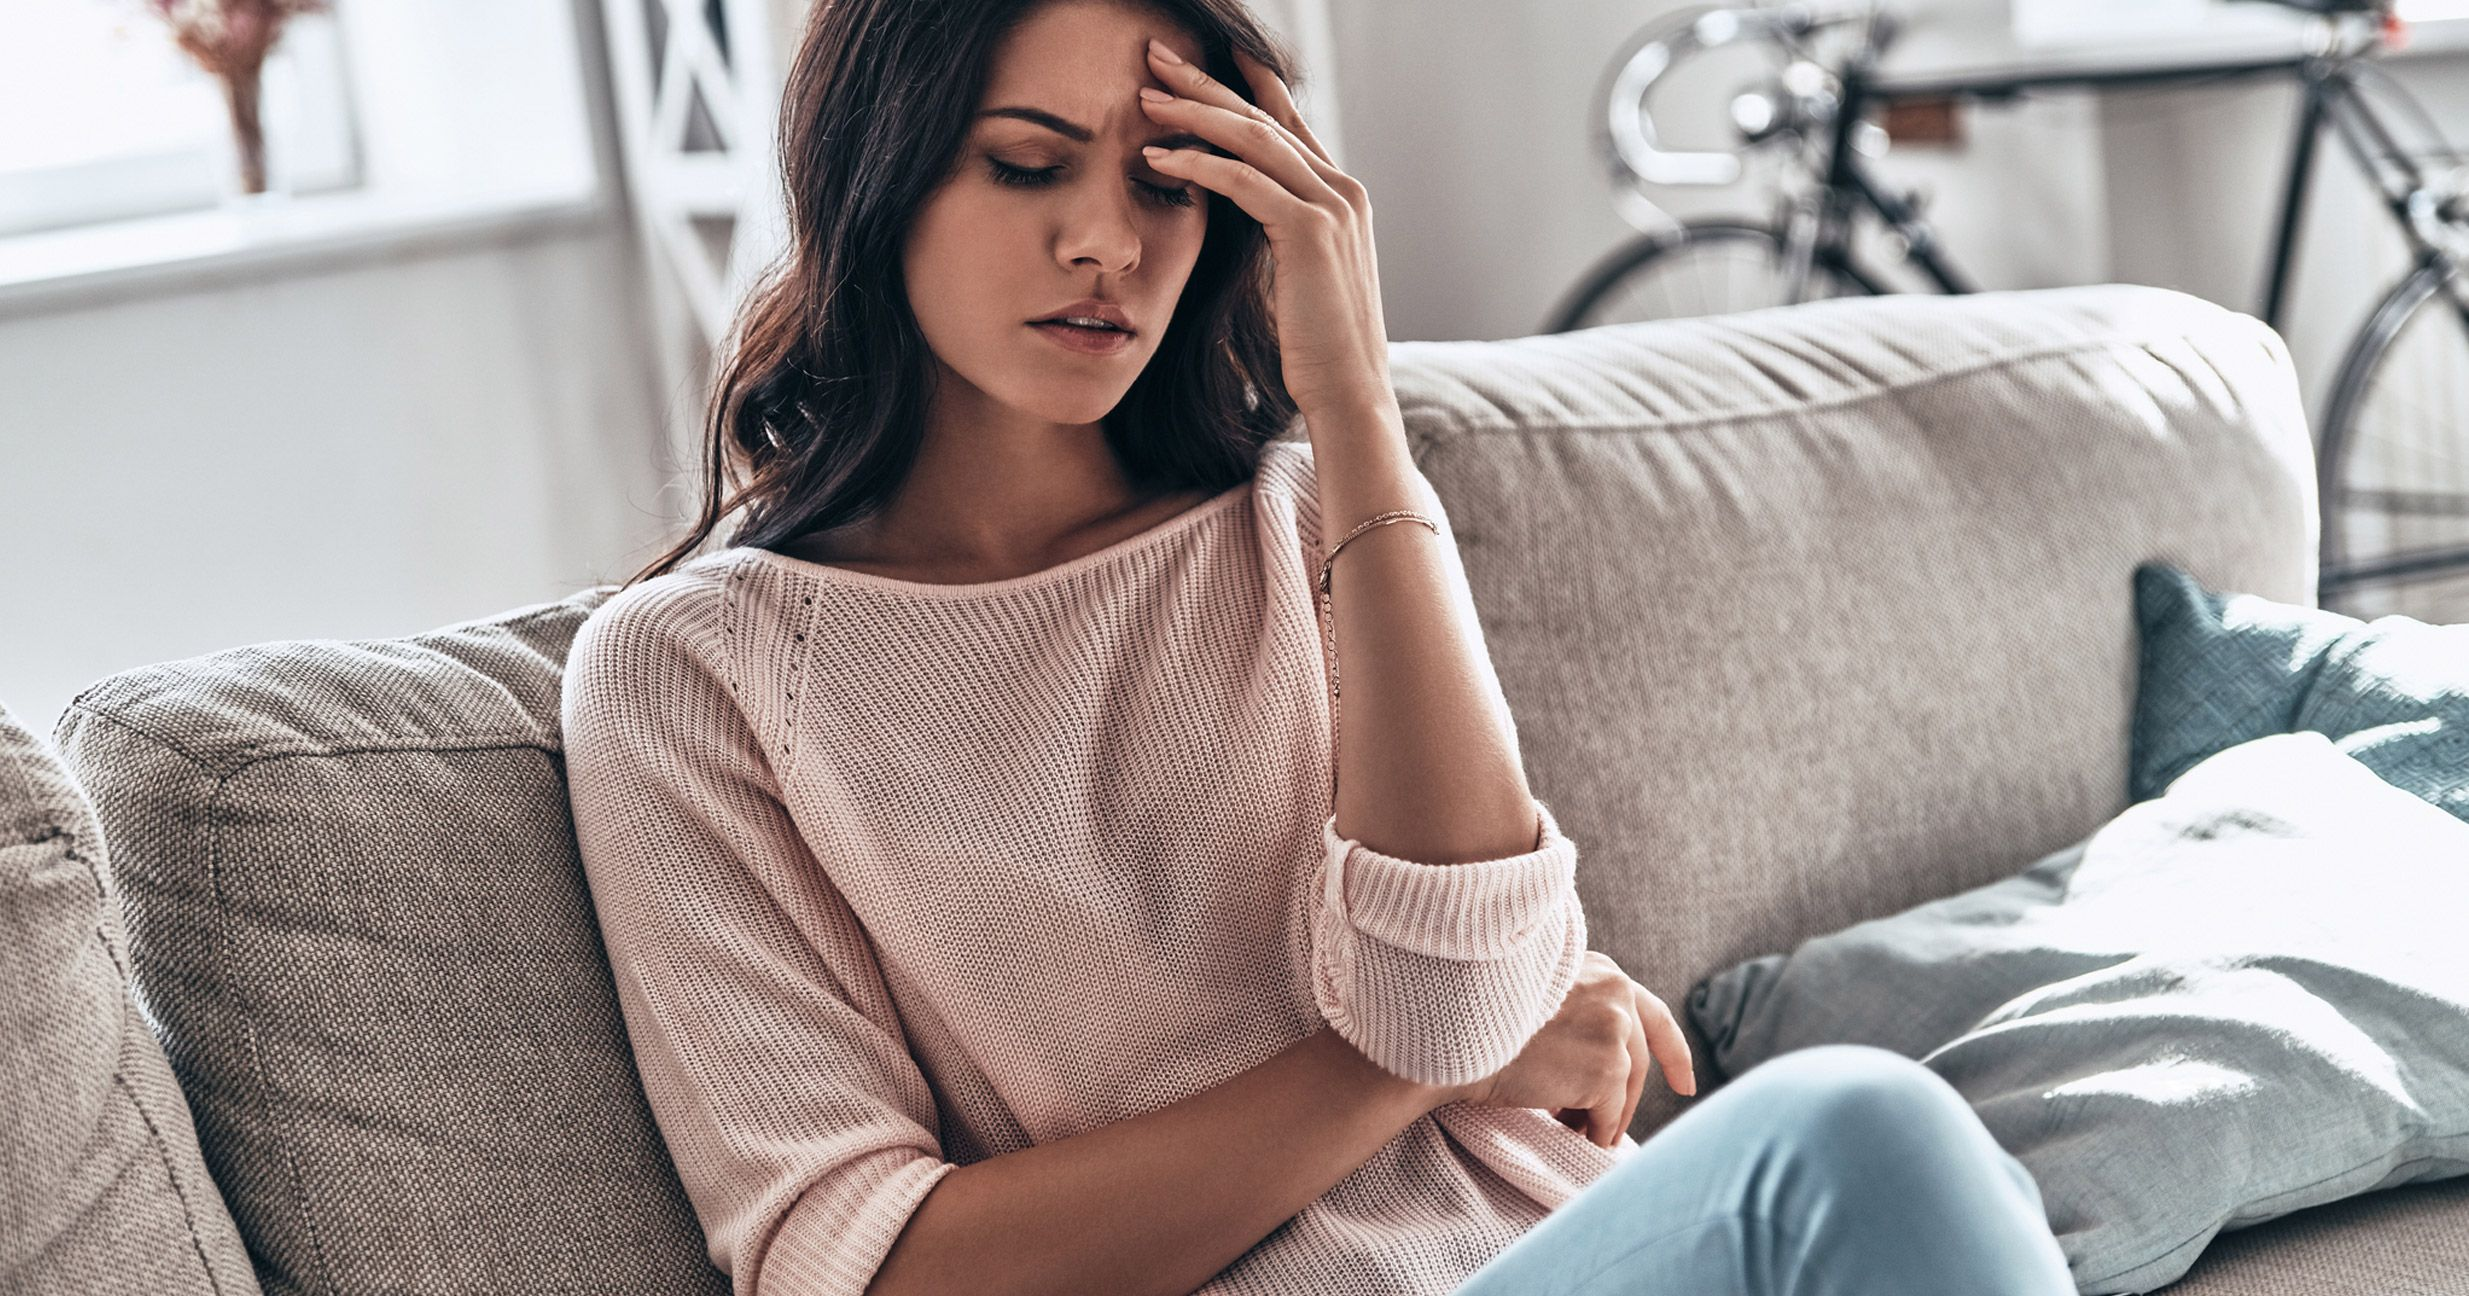 Migraine pains being felt by woman on a couch. Learn about vitamins and supplements for migraine relief